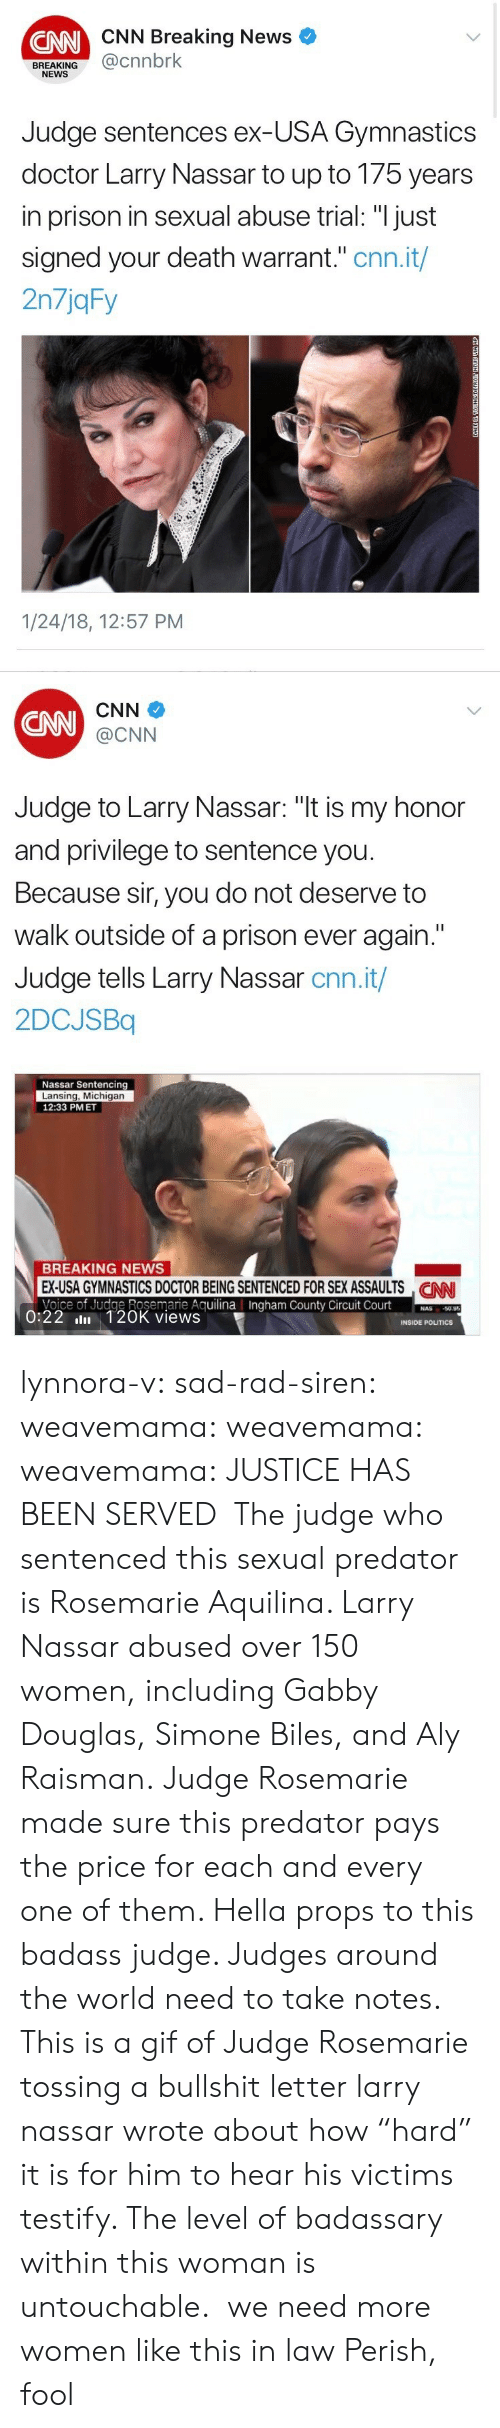 "In Law: CNN Breaking News  CNN  BREAKING@cnnbrk  NEWS  Judge sentences ex-USA Gymnastics  doctor Larry Nassar to up to 175 years  in prison in sexual abuse trial: ""I just  signed your death warrant."" cnn.it/  2n7jqFy  1/24/18, 12:57 PM   CNN  CNN  @CNN  Judge to Larry Nassar: ""t is my honor  and privilege to sentence you  Because sir, you do not deserve to  walk outside of a prison ever again.""  Judge tells Larry Nassar cnn.it/  2DCJSBq  Nassar Sentencing  Lansing, Michigan  12:33 PMET  BREAKING NEWS  EX-USA GYMNASTICS DOCTOR BEING SENTENCED FOR SEX ASSAULTS NN  Voice of Judge Rosemarie AguilinaIngham County Circuit Court0  CAN  County  50.95  0:22 